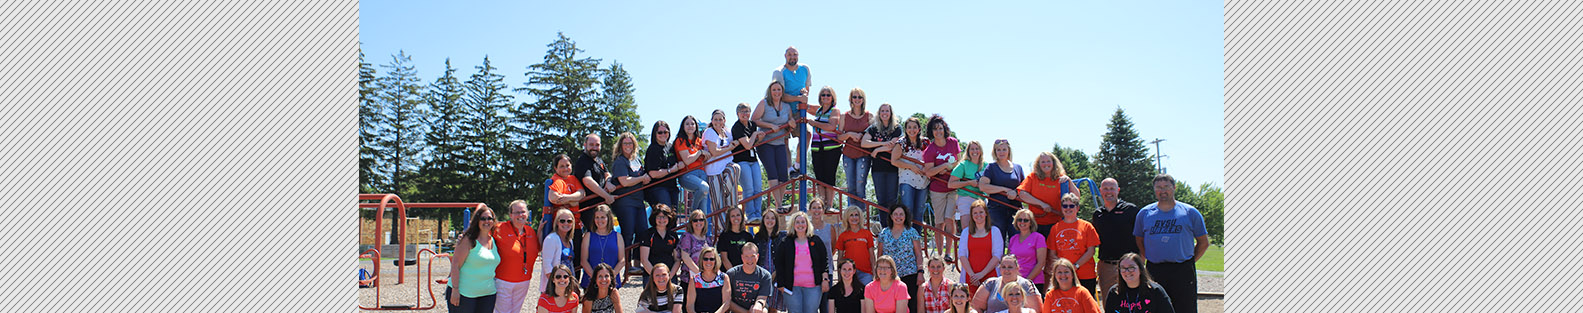 Grant Elementary School staff posing for an outdoor picture